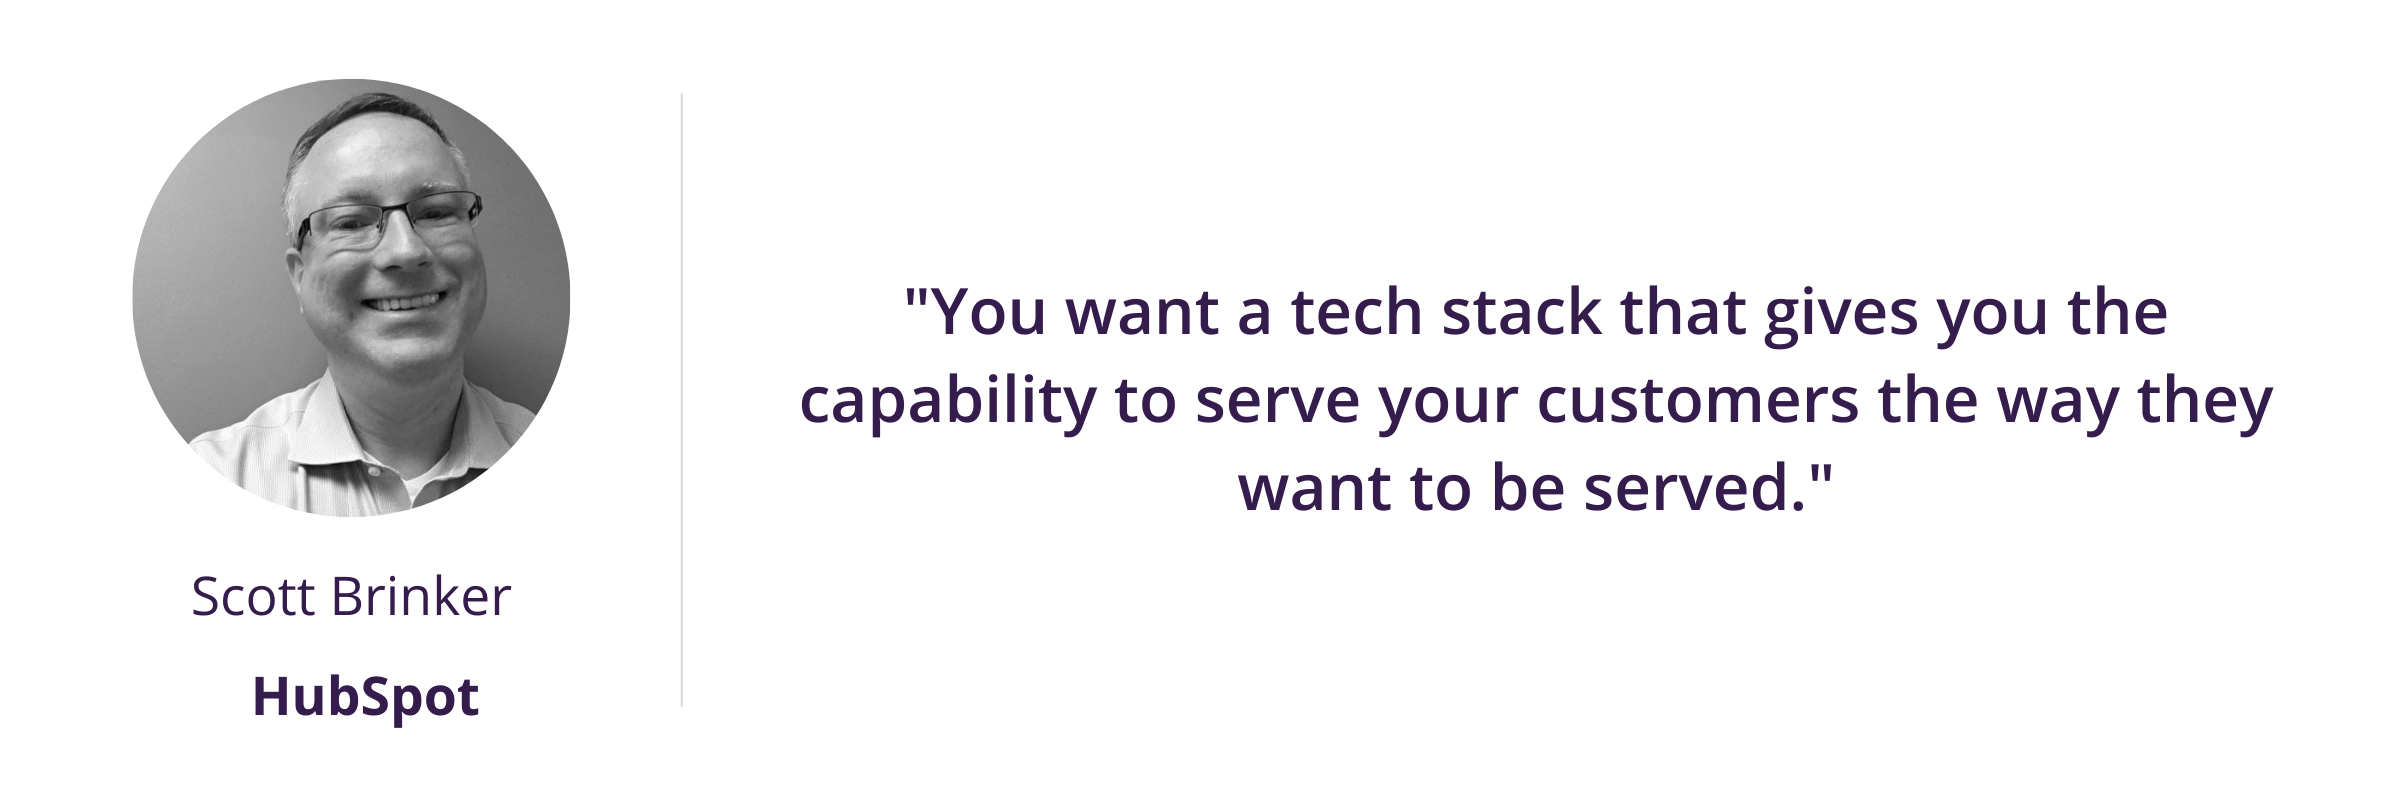 """Tech assessment """"You want a tech stack that gives you the capability to serve your customers the way they want to be served."""""""